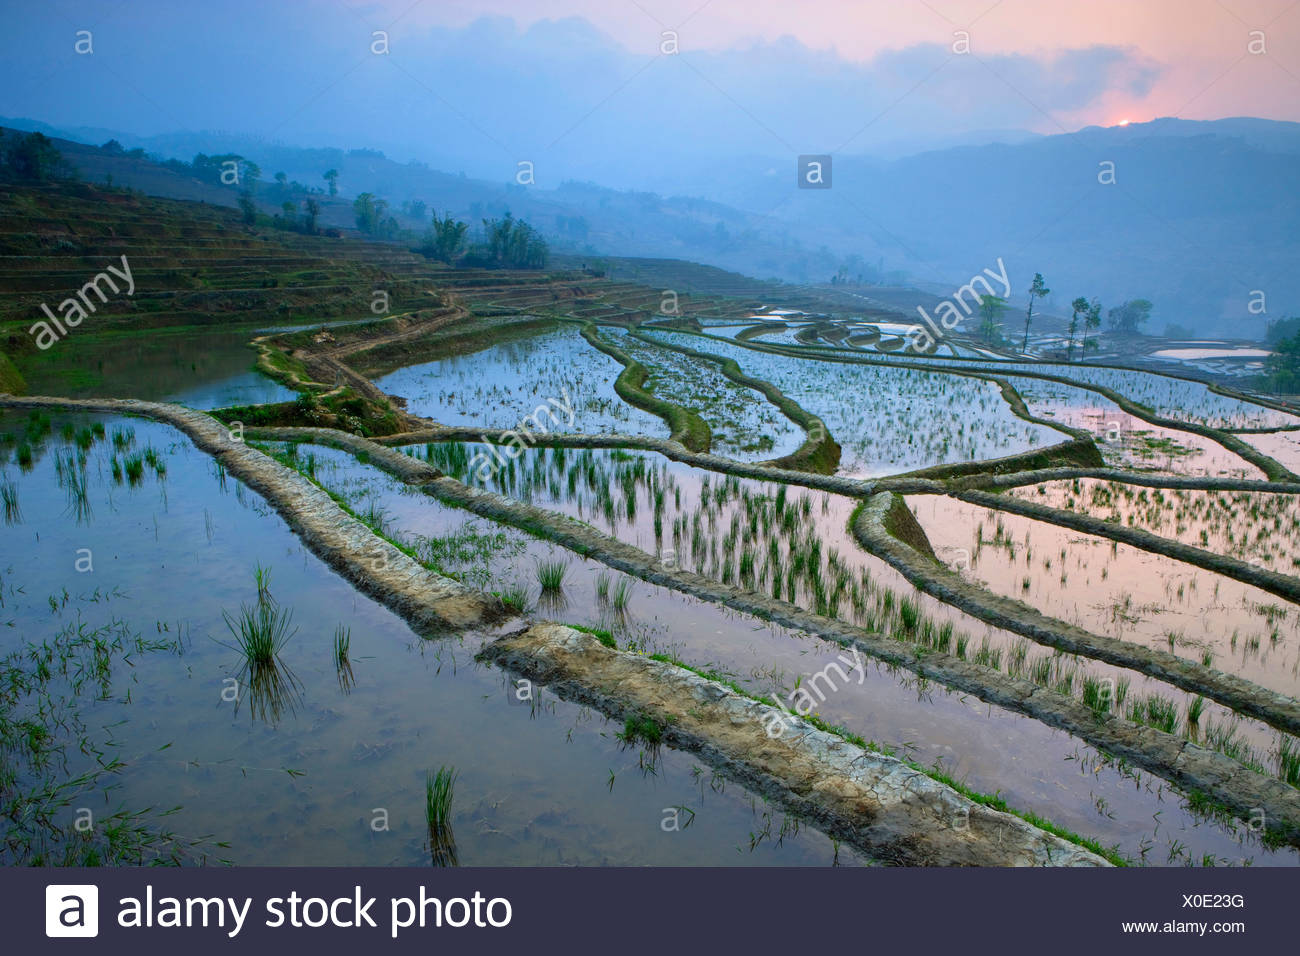 Yuanyang, China, Asia, rice terraces, growing of rice, rice fields, agriculture, water, morning light, sunrise, fog, spring - Stock Image